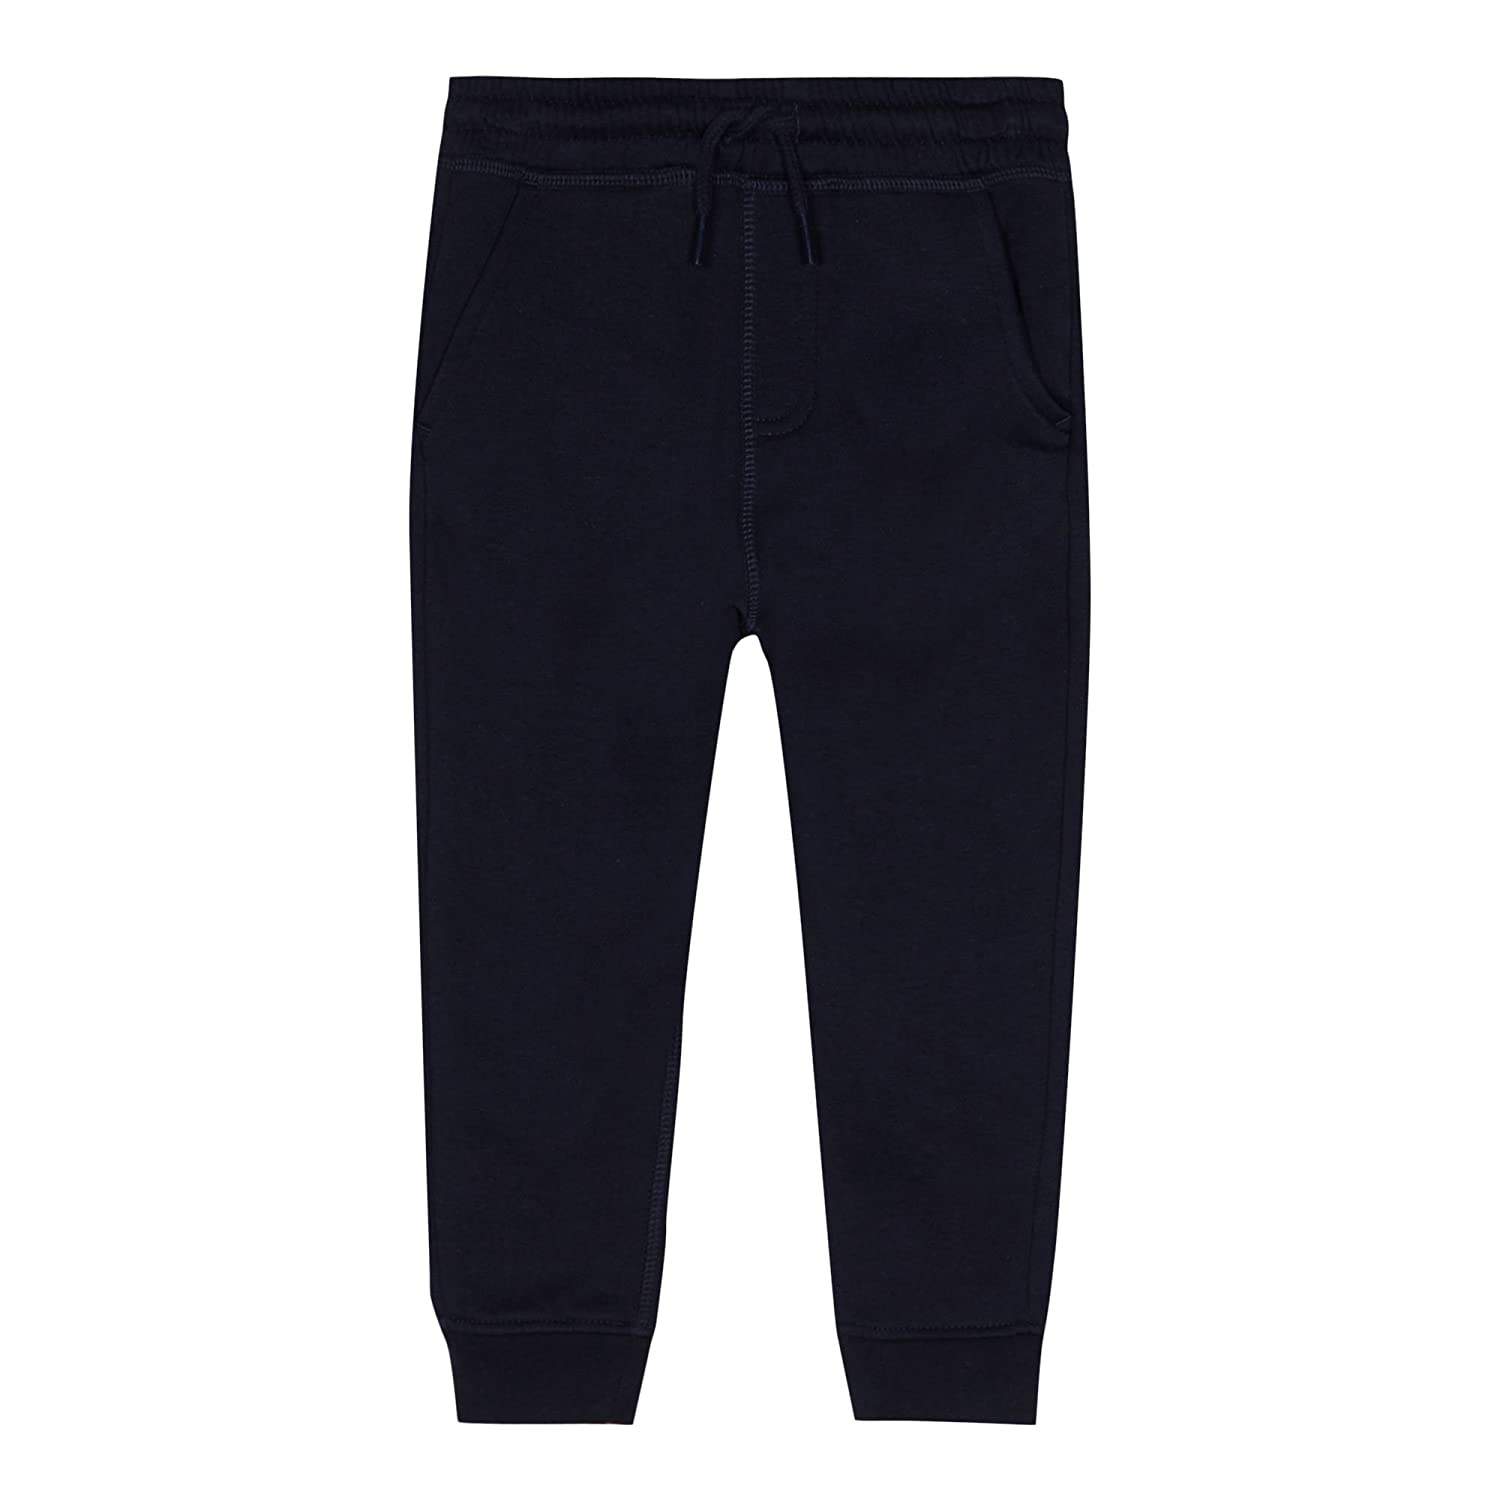 bluezoo Kids Boys' Navy Jogging Bottoms